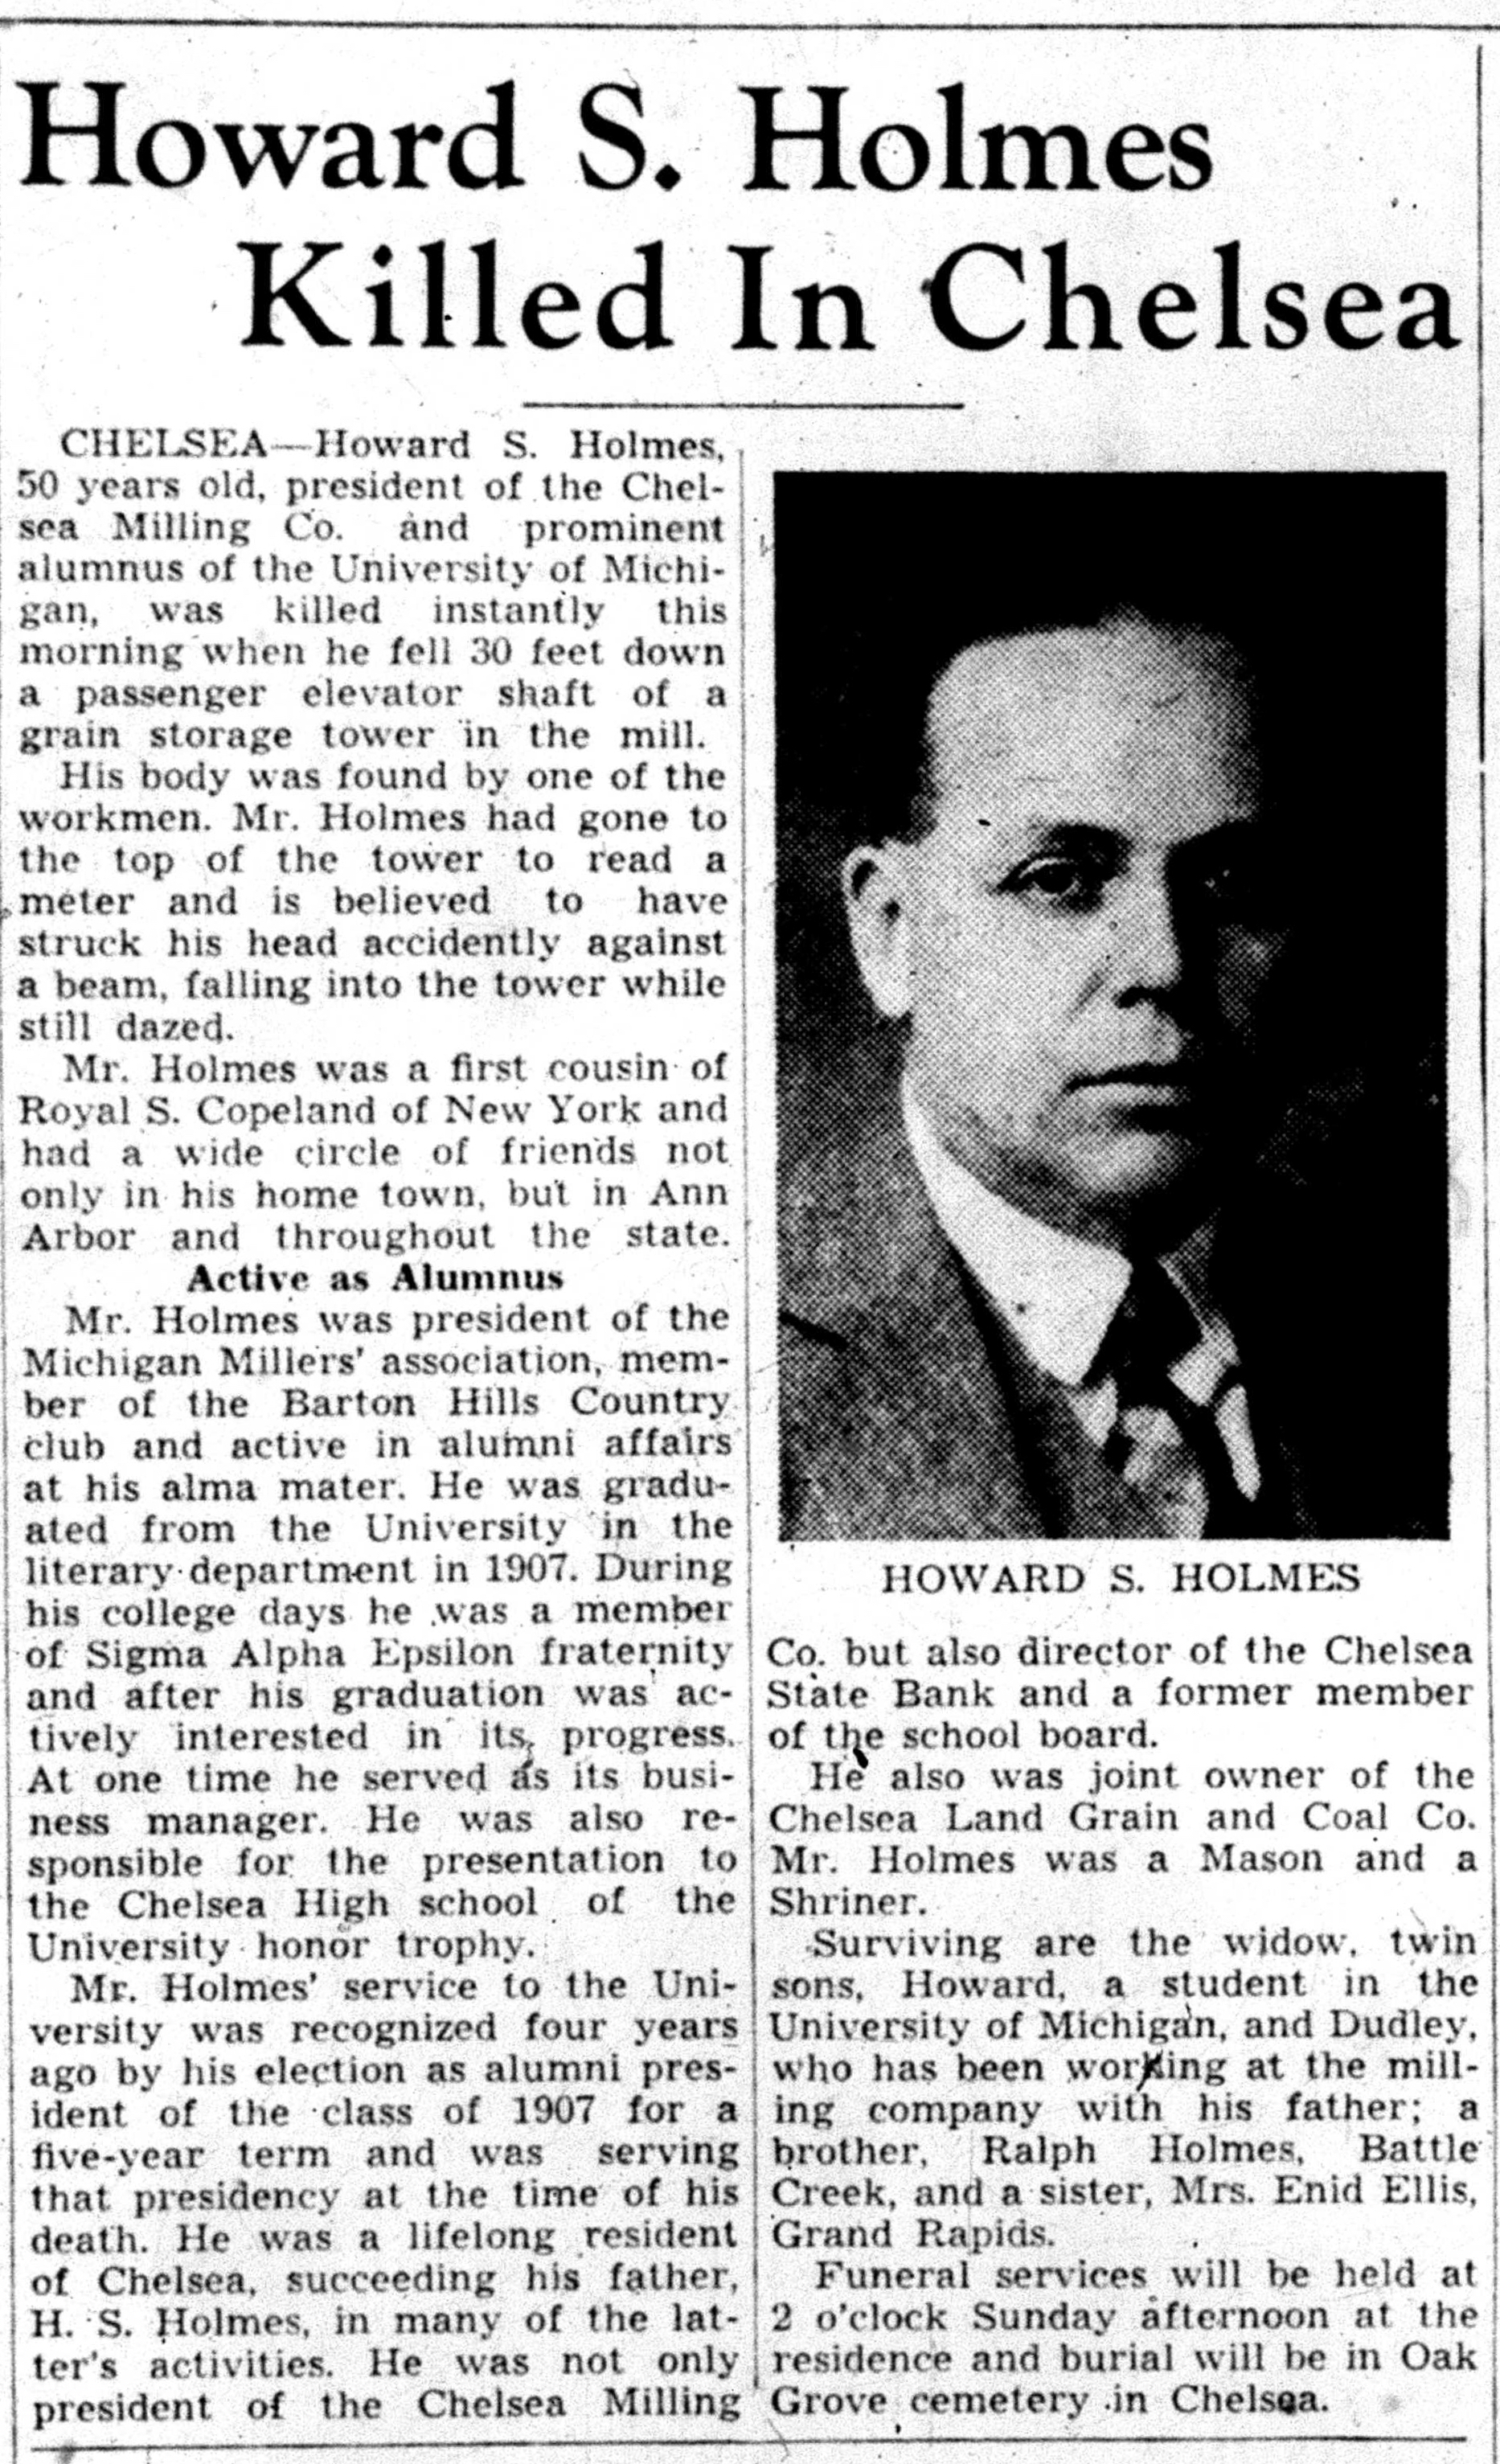 Howard S. Holmes Killed In Chelsea image